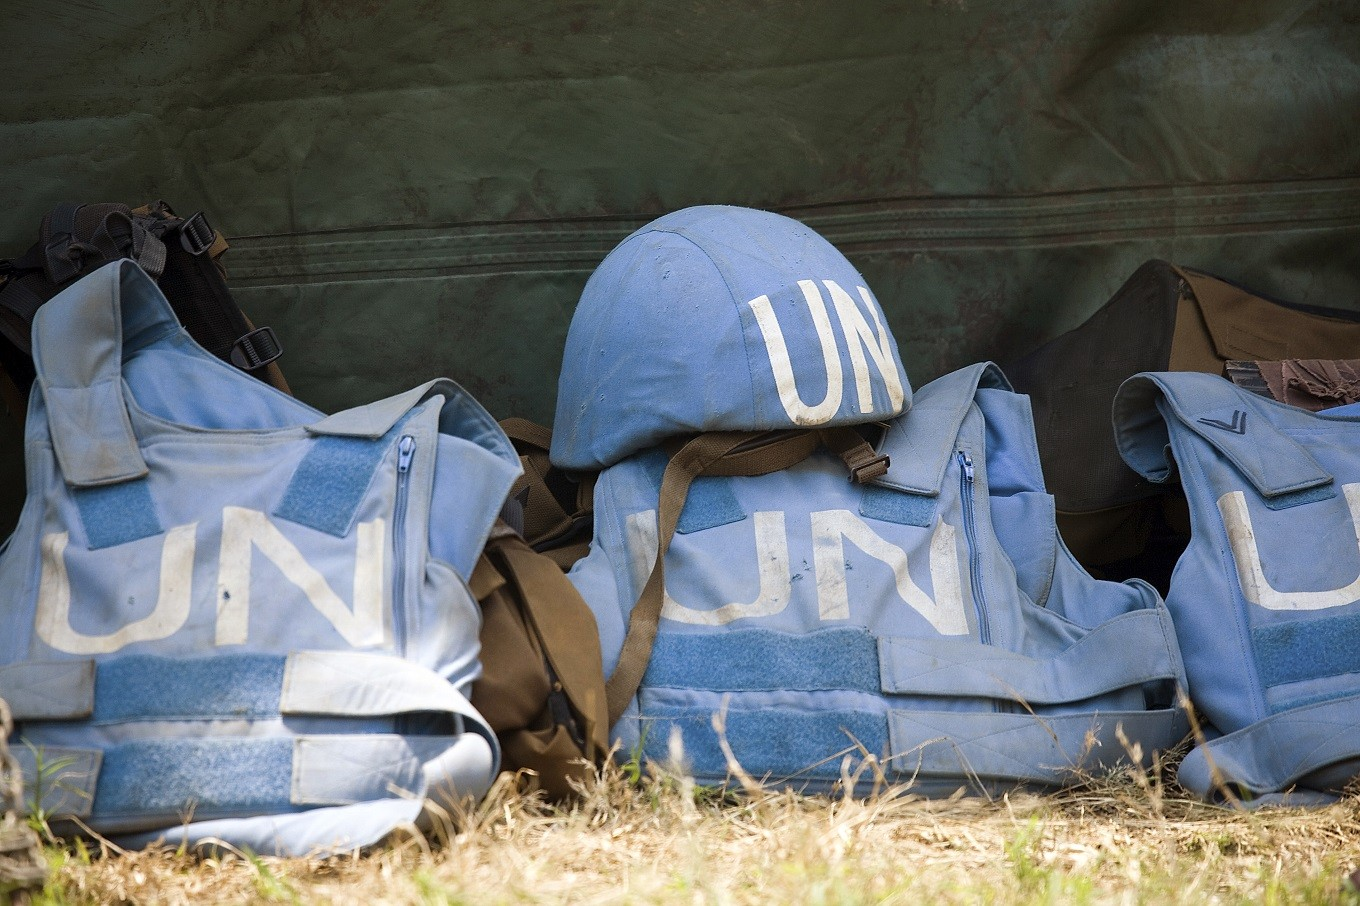 Protecting civilians and peacekeepers